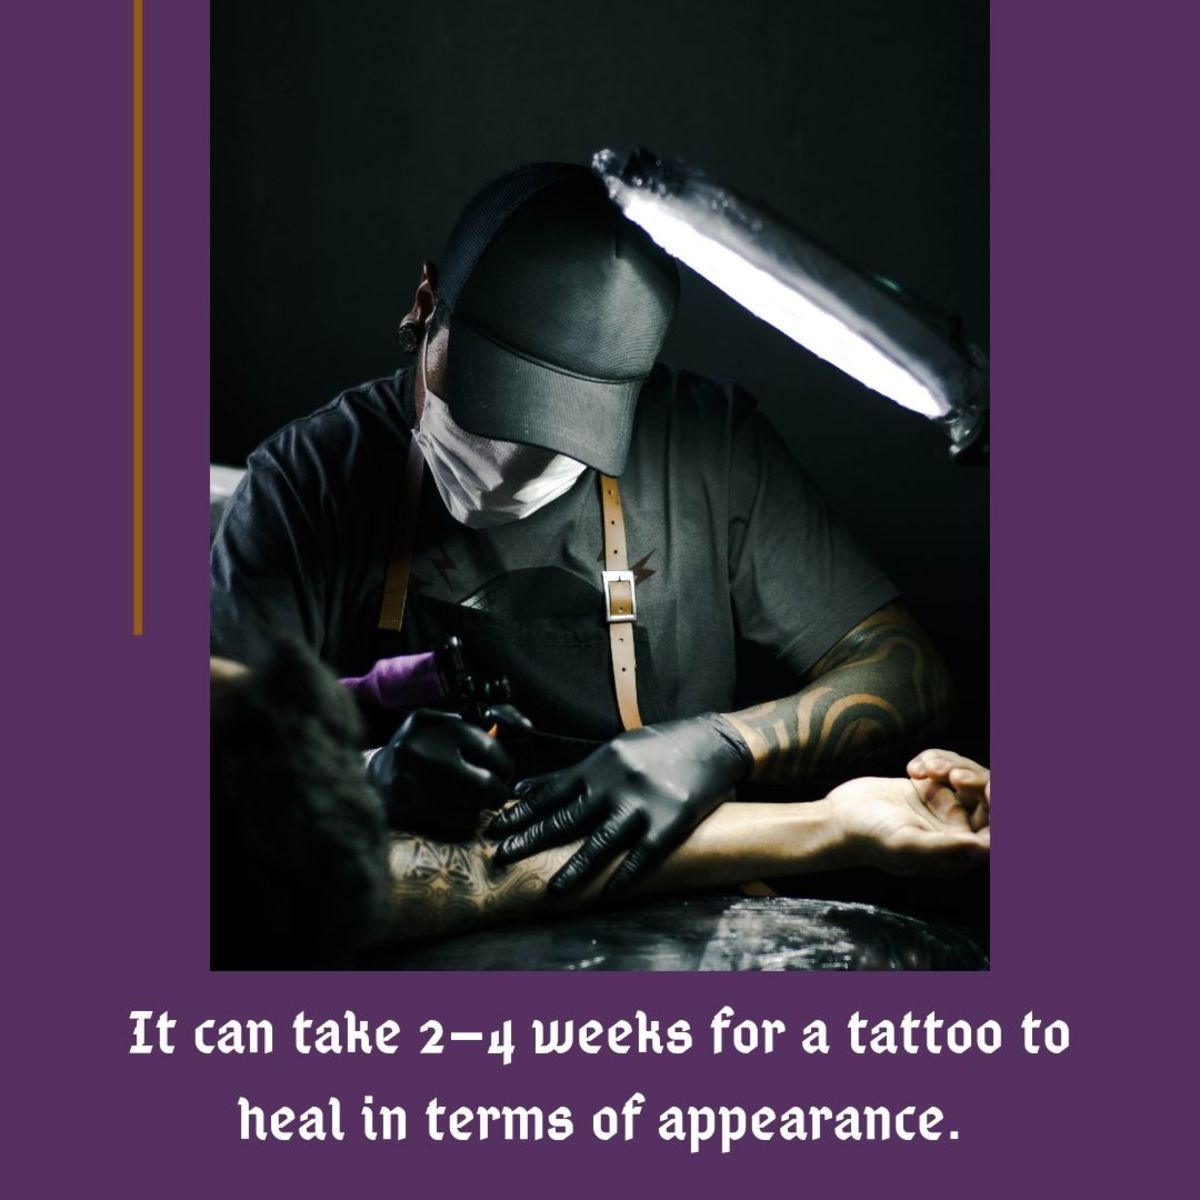 Tattoos take a while to heal, so make sure to take proper care of your new tattoo so that it heals as quickly as possible.